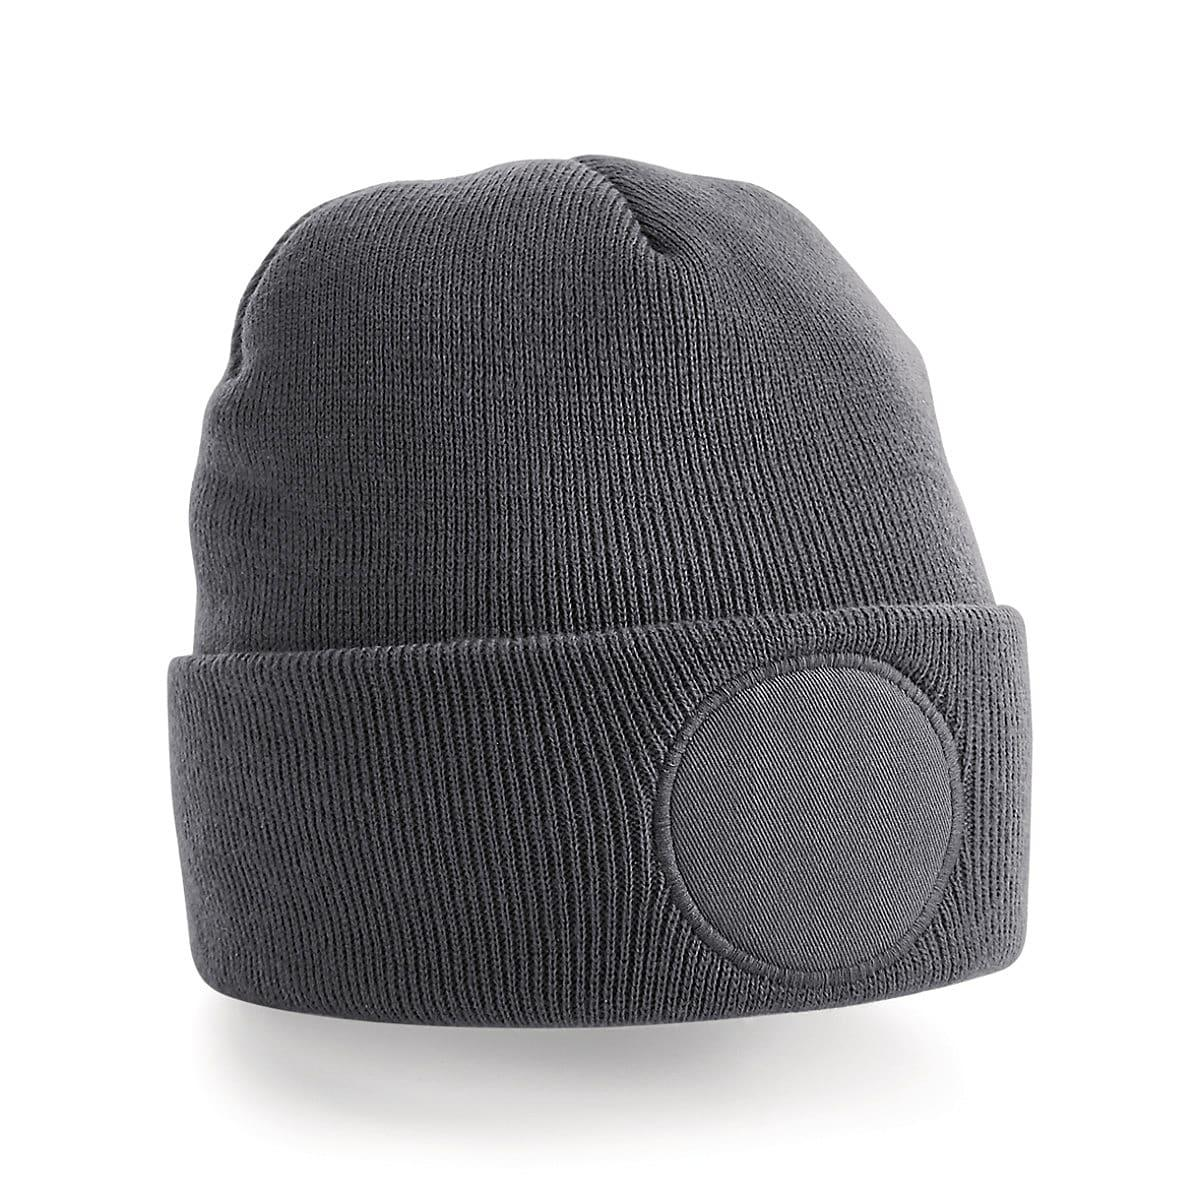 Beechfield Circular Patch Beanie Hat in Graphite (Product Code: B446)